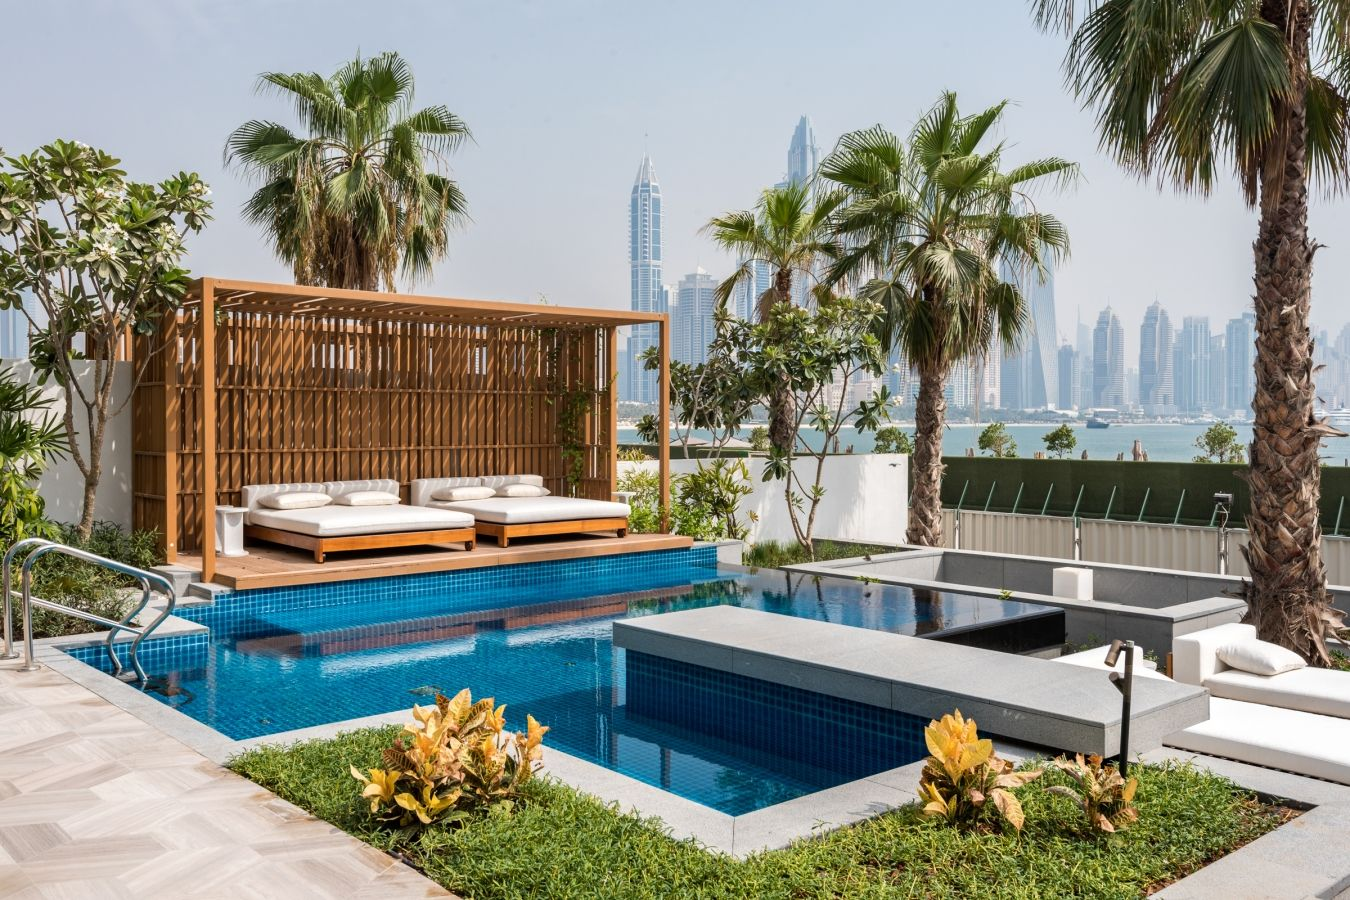 Extraordinary Property for Sale From luxury amenities